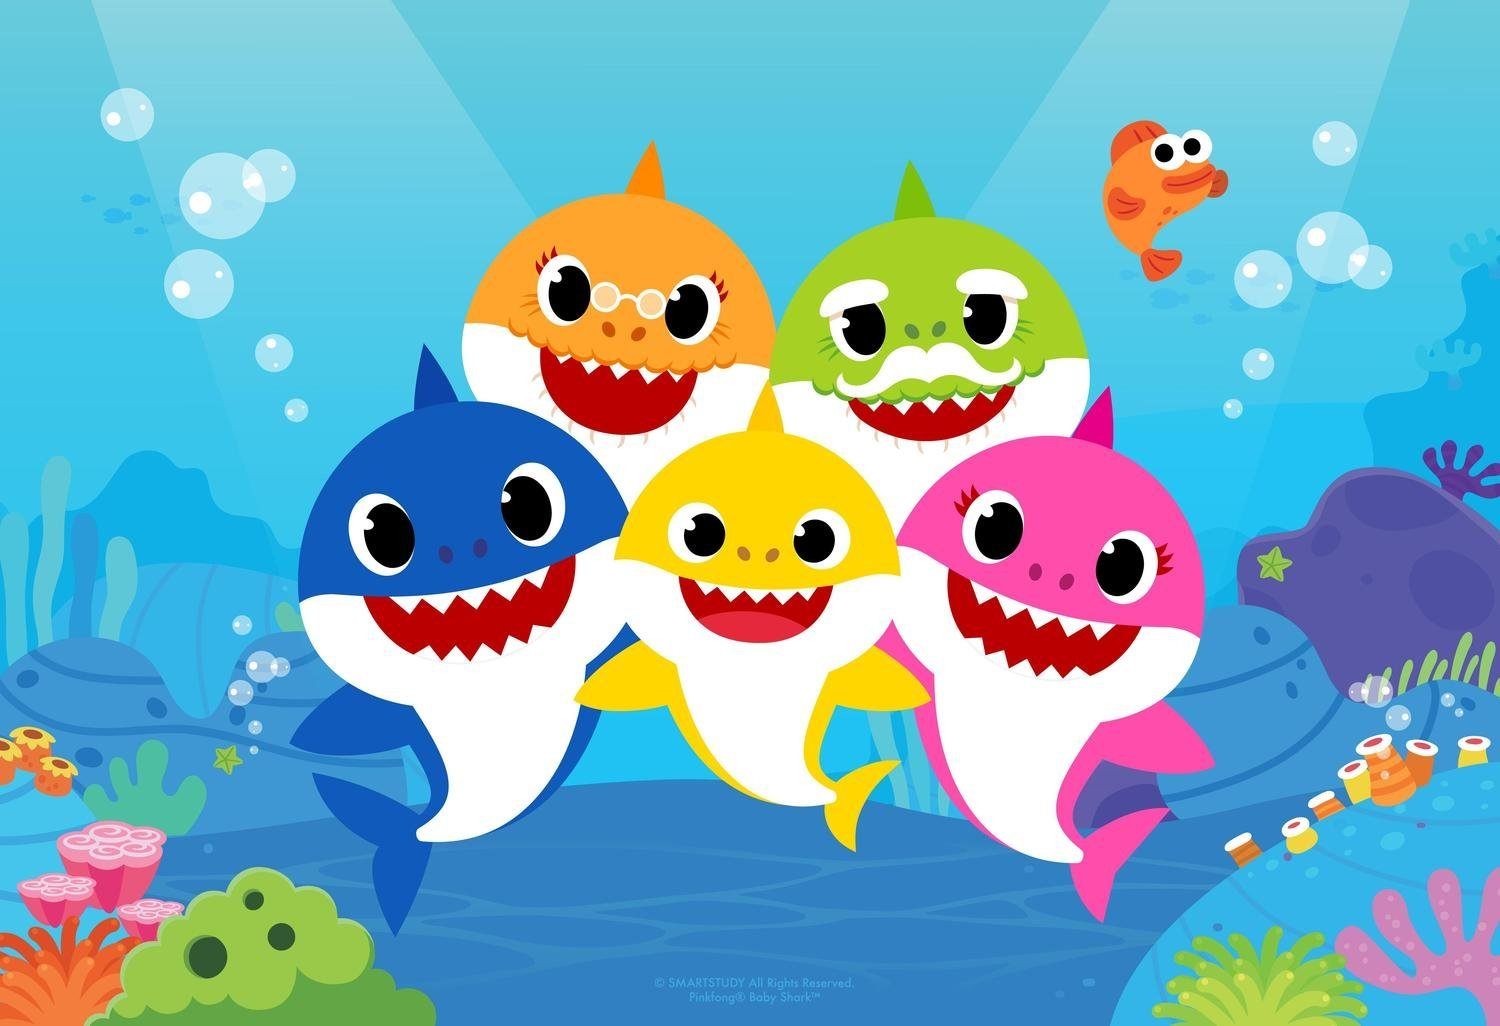 Baby Shark (Nickelodeon via CNN)